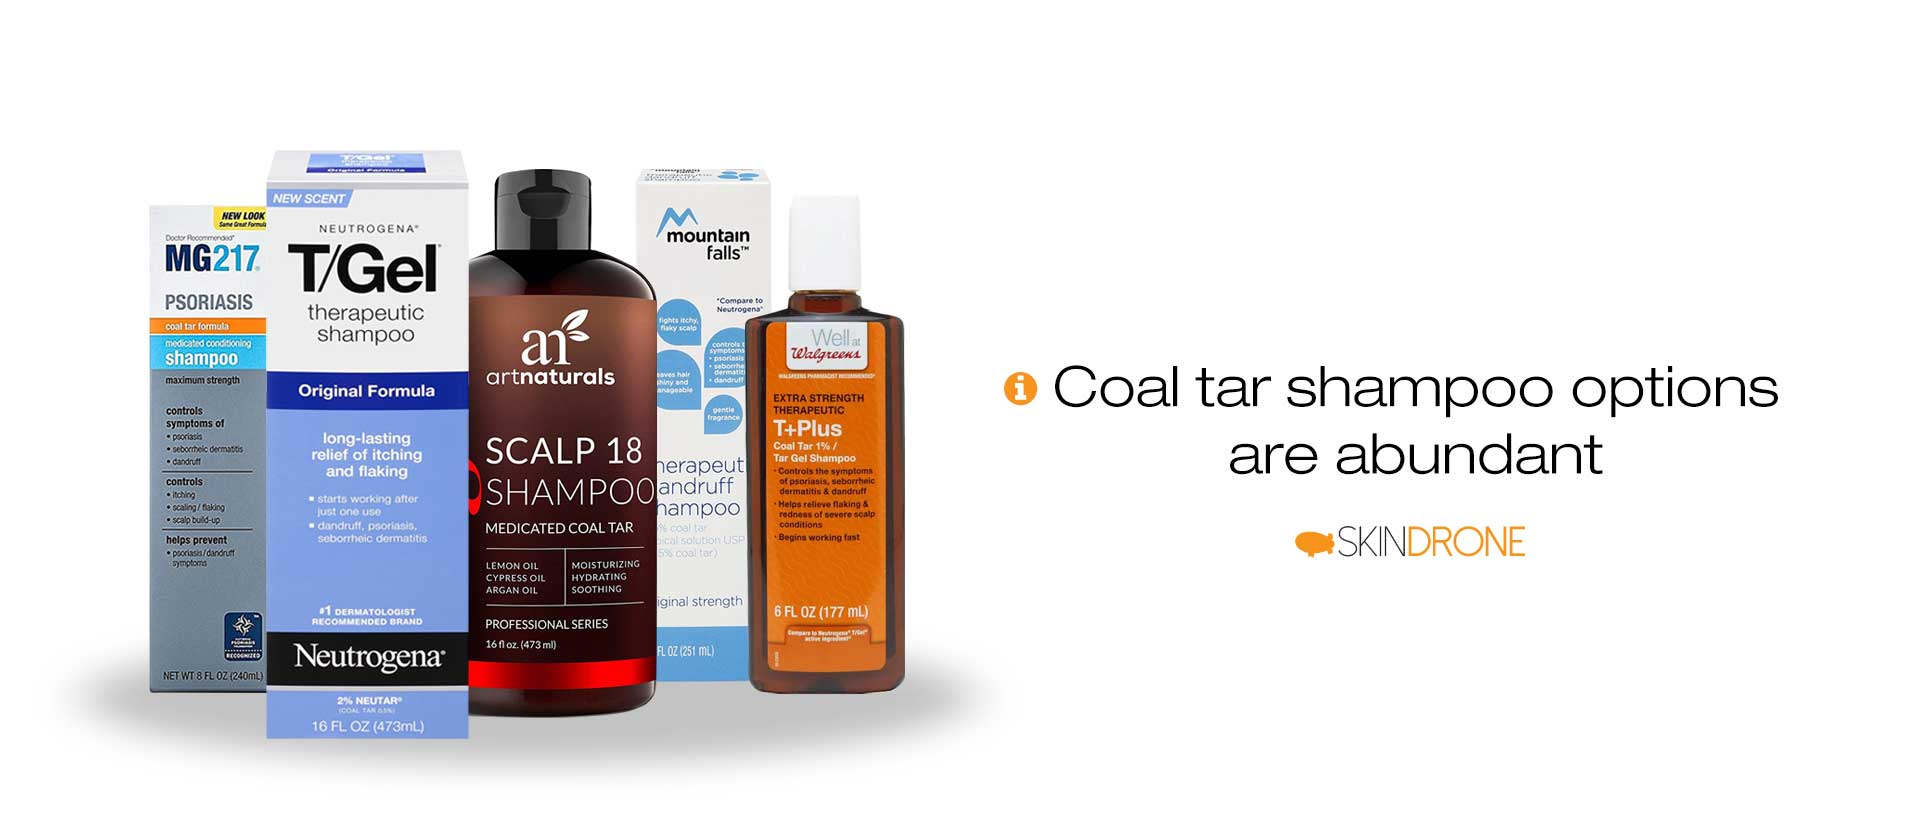 Five of the most common coal tar base anti-dandruff shampoos